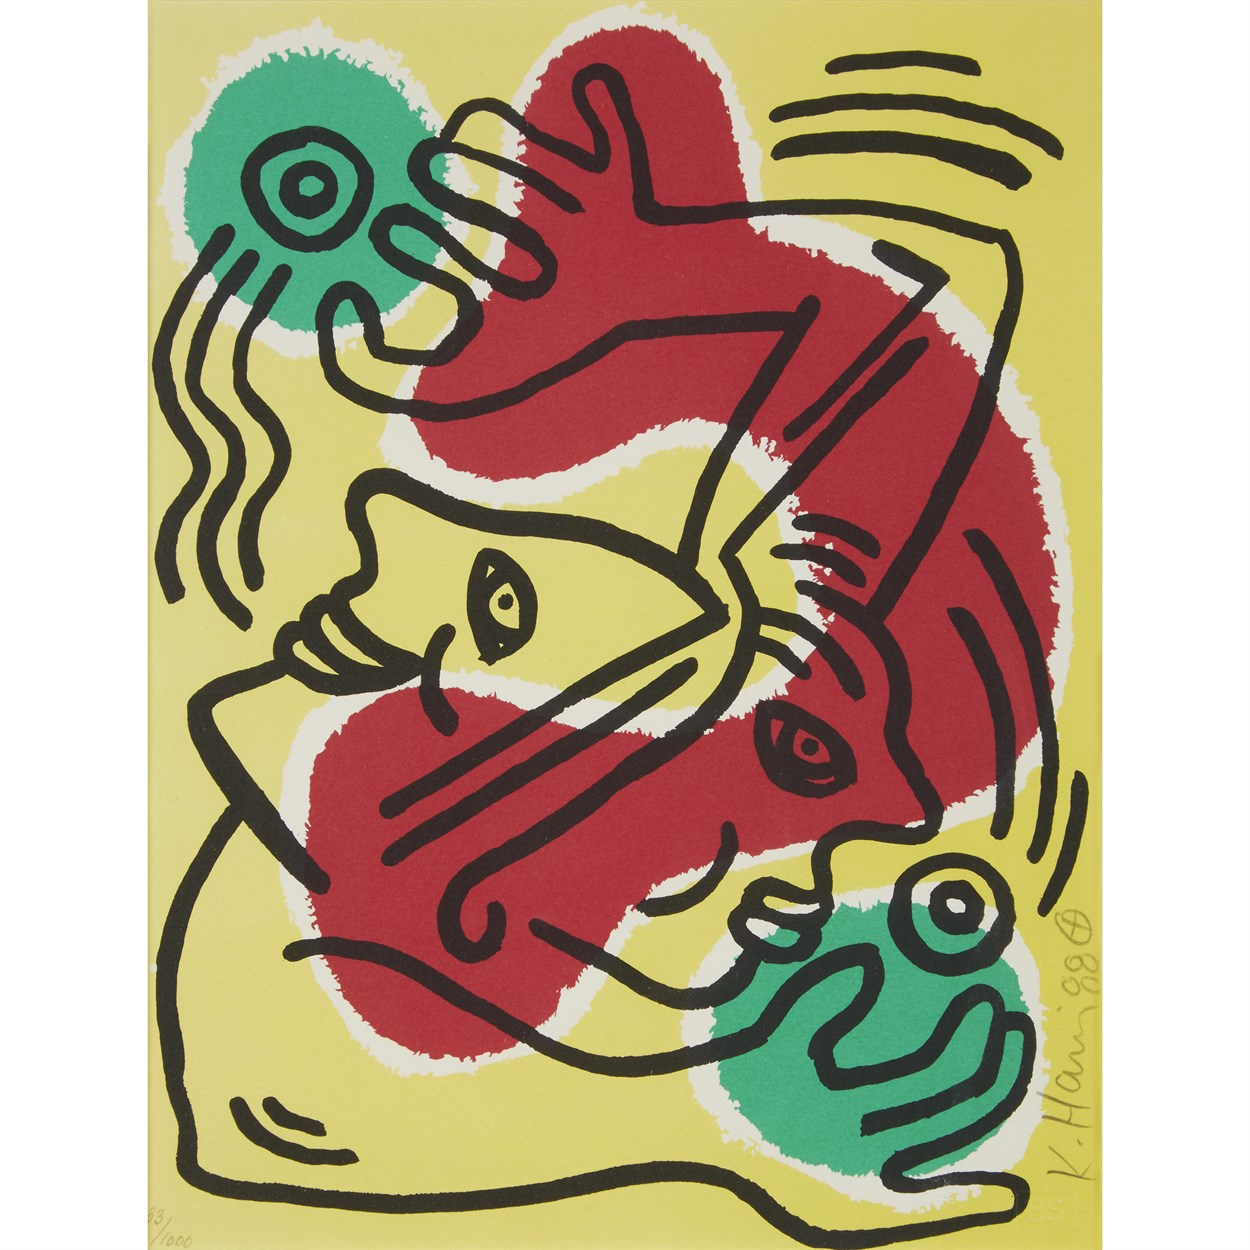 Lot 73 - Two PrintsKeith Haring (American, 1958-1990)